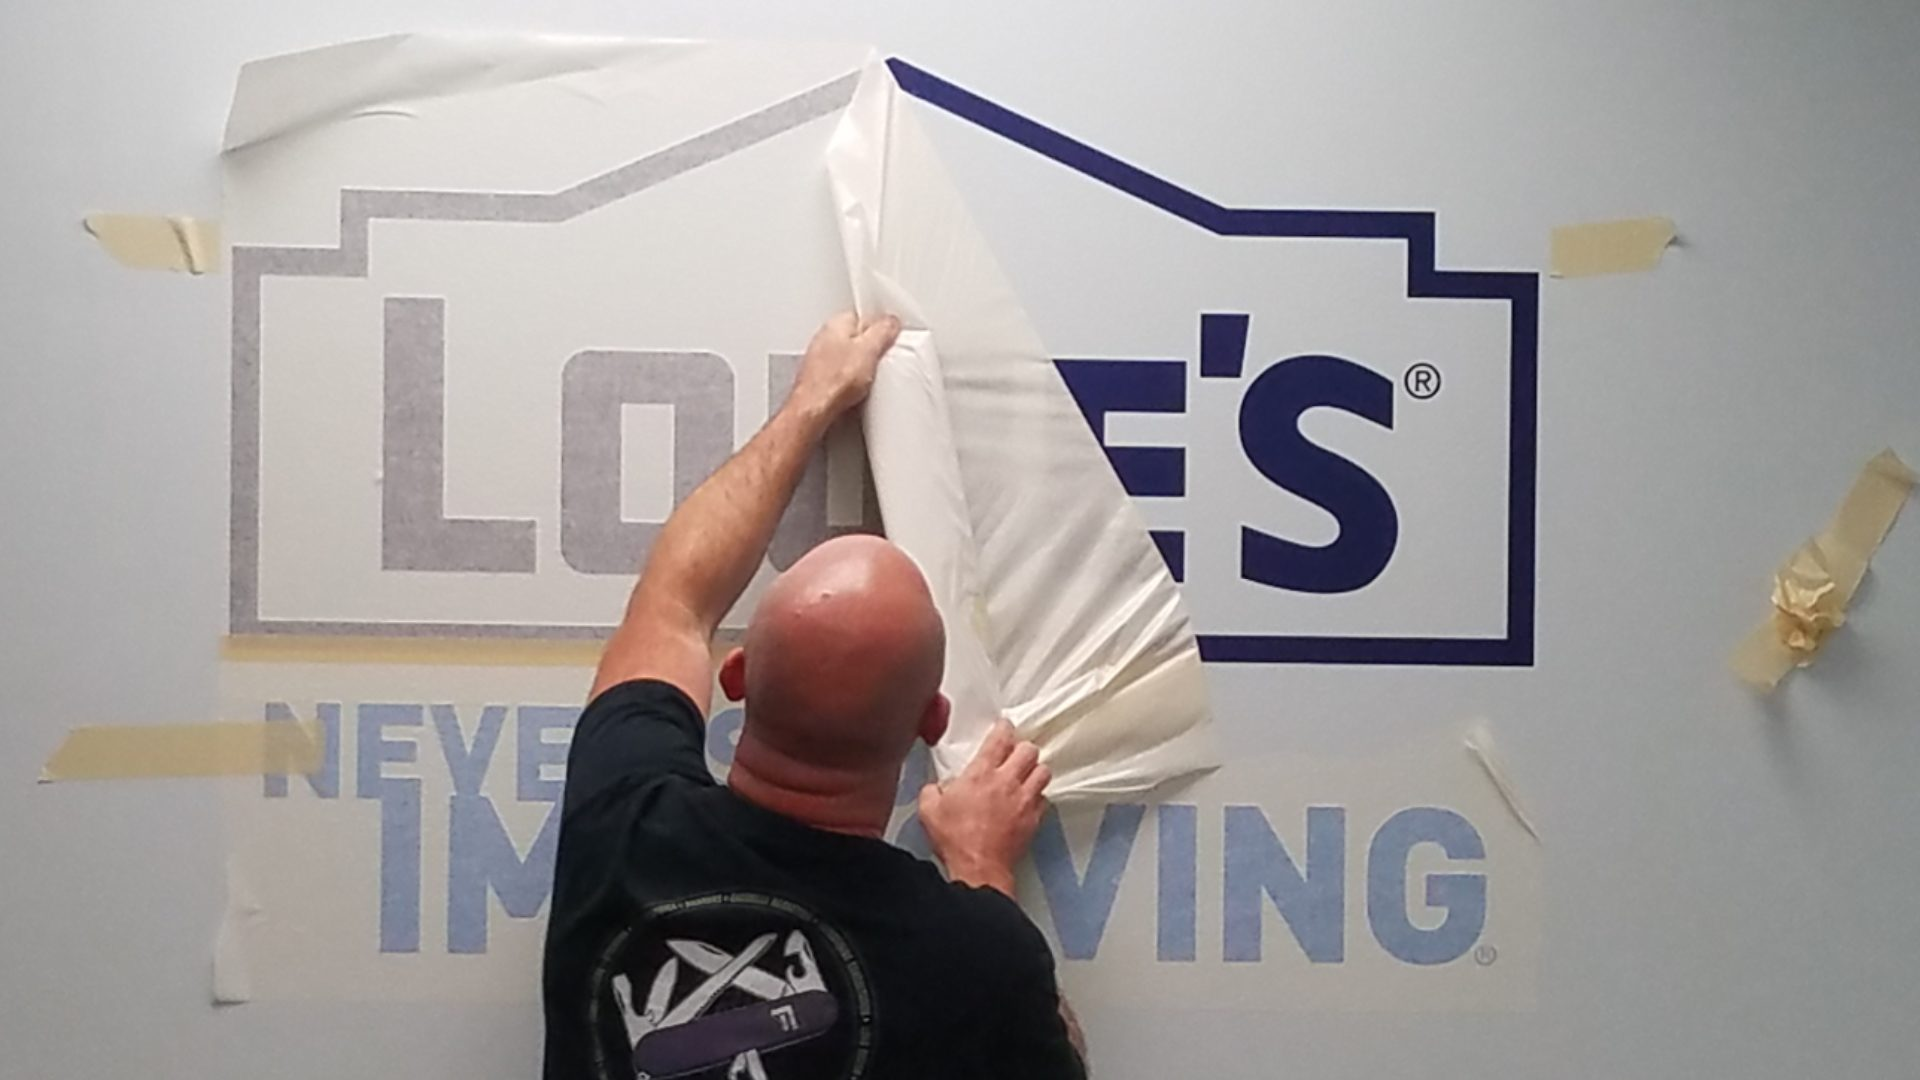 Lowes - Vinyl Wall Graphics (3)